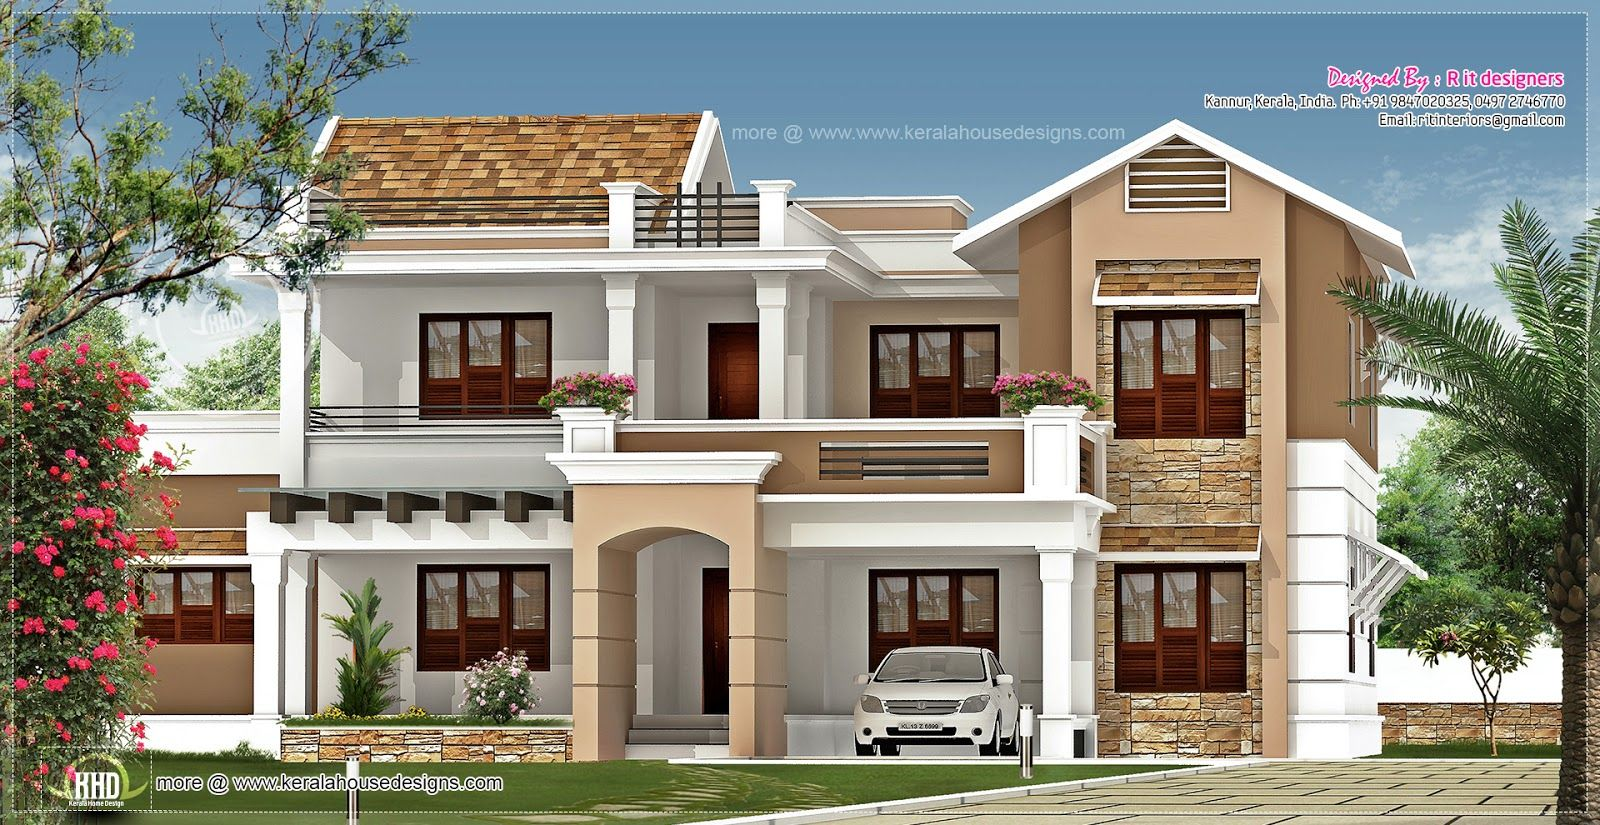 5 Bedroom Villa In 3740 Square Feet Meter Yards Designed By R It Designers Kannur Kerala